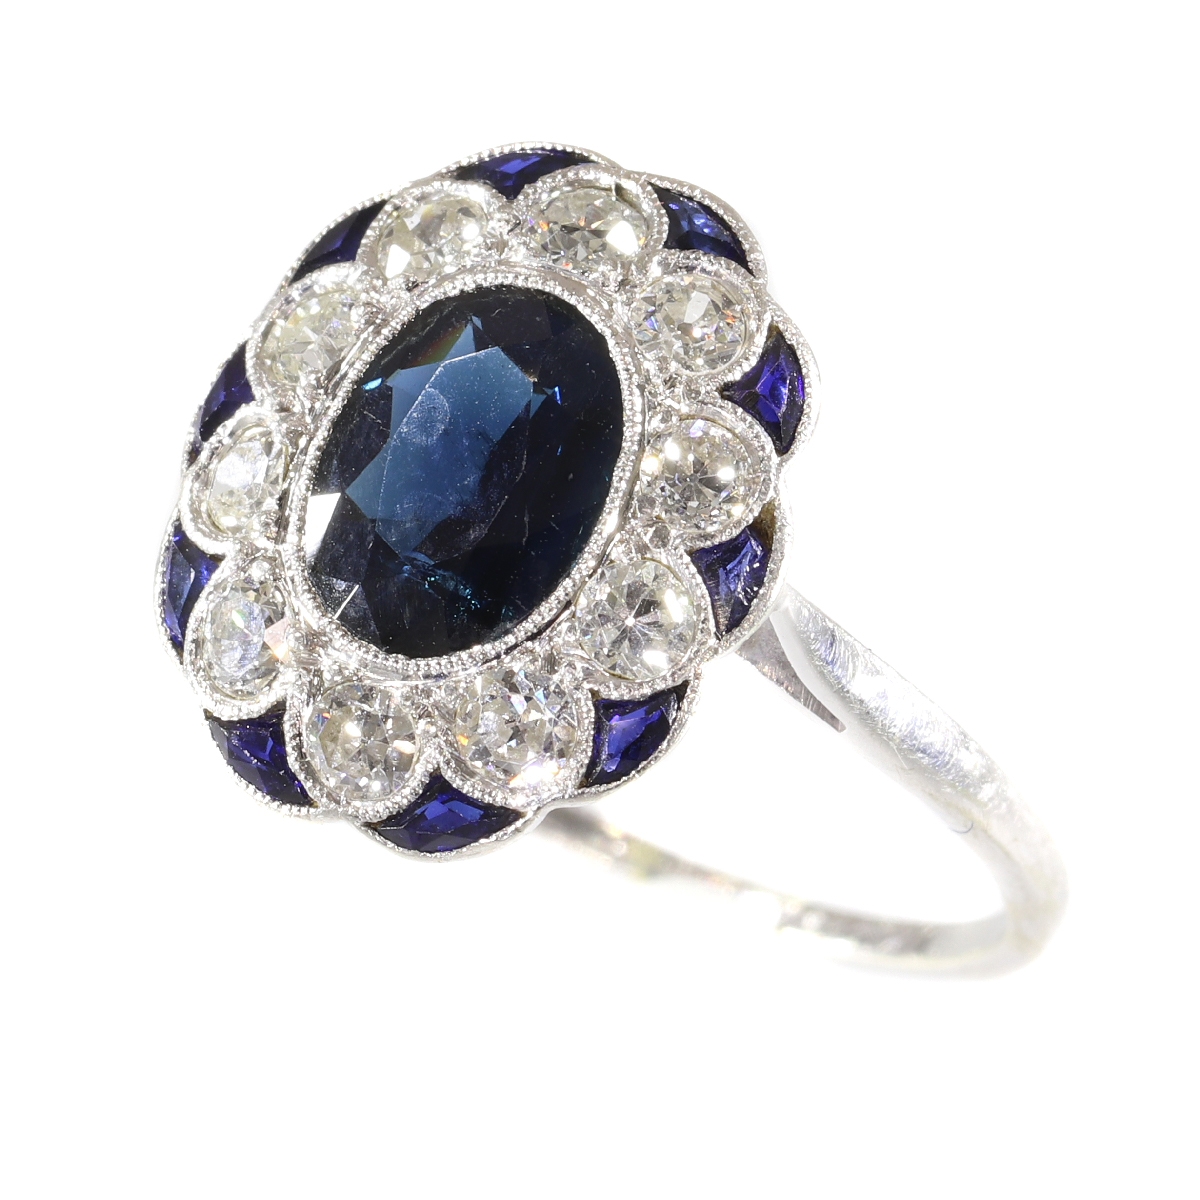 Charming original Art Deco vintage diamond and sapphire engagement ring